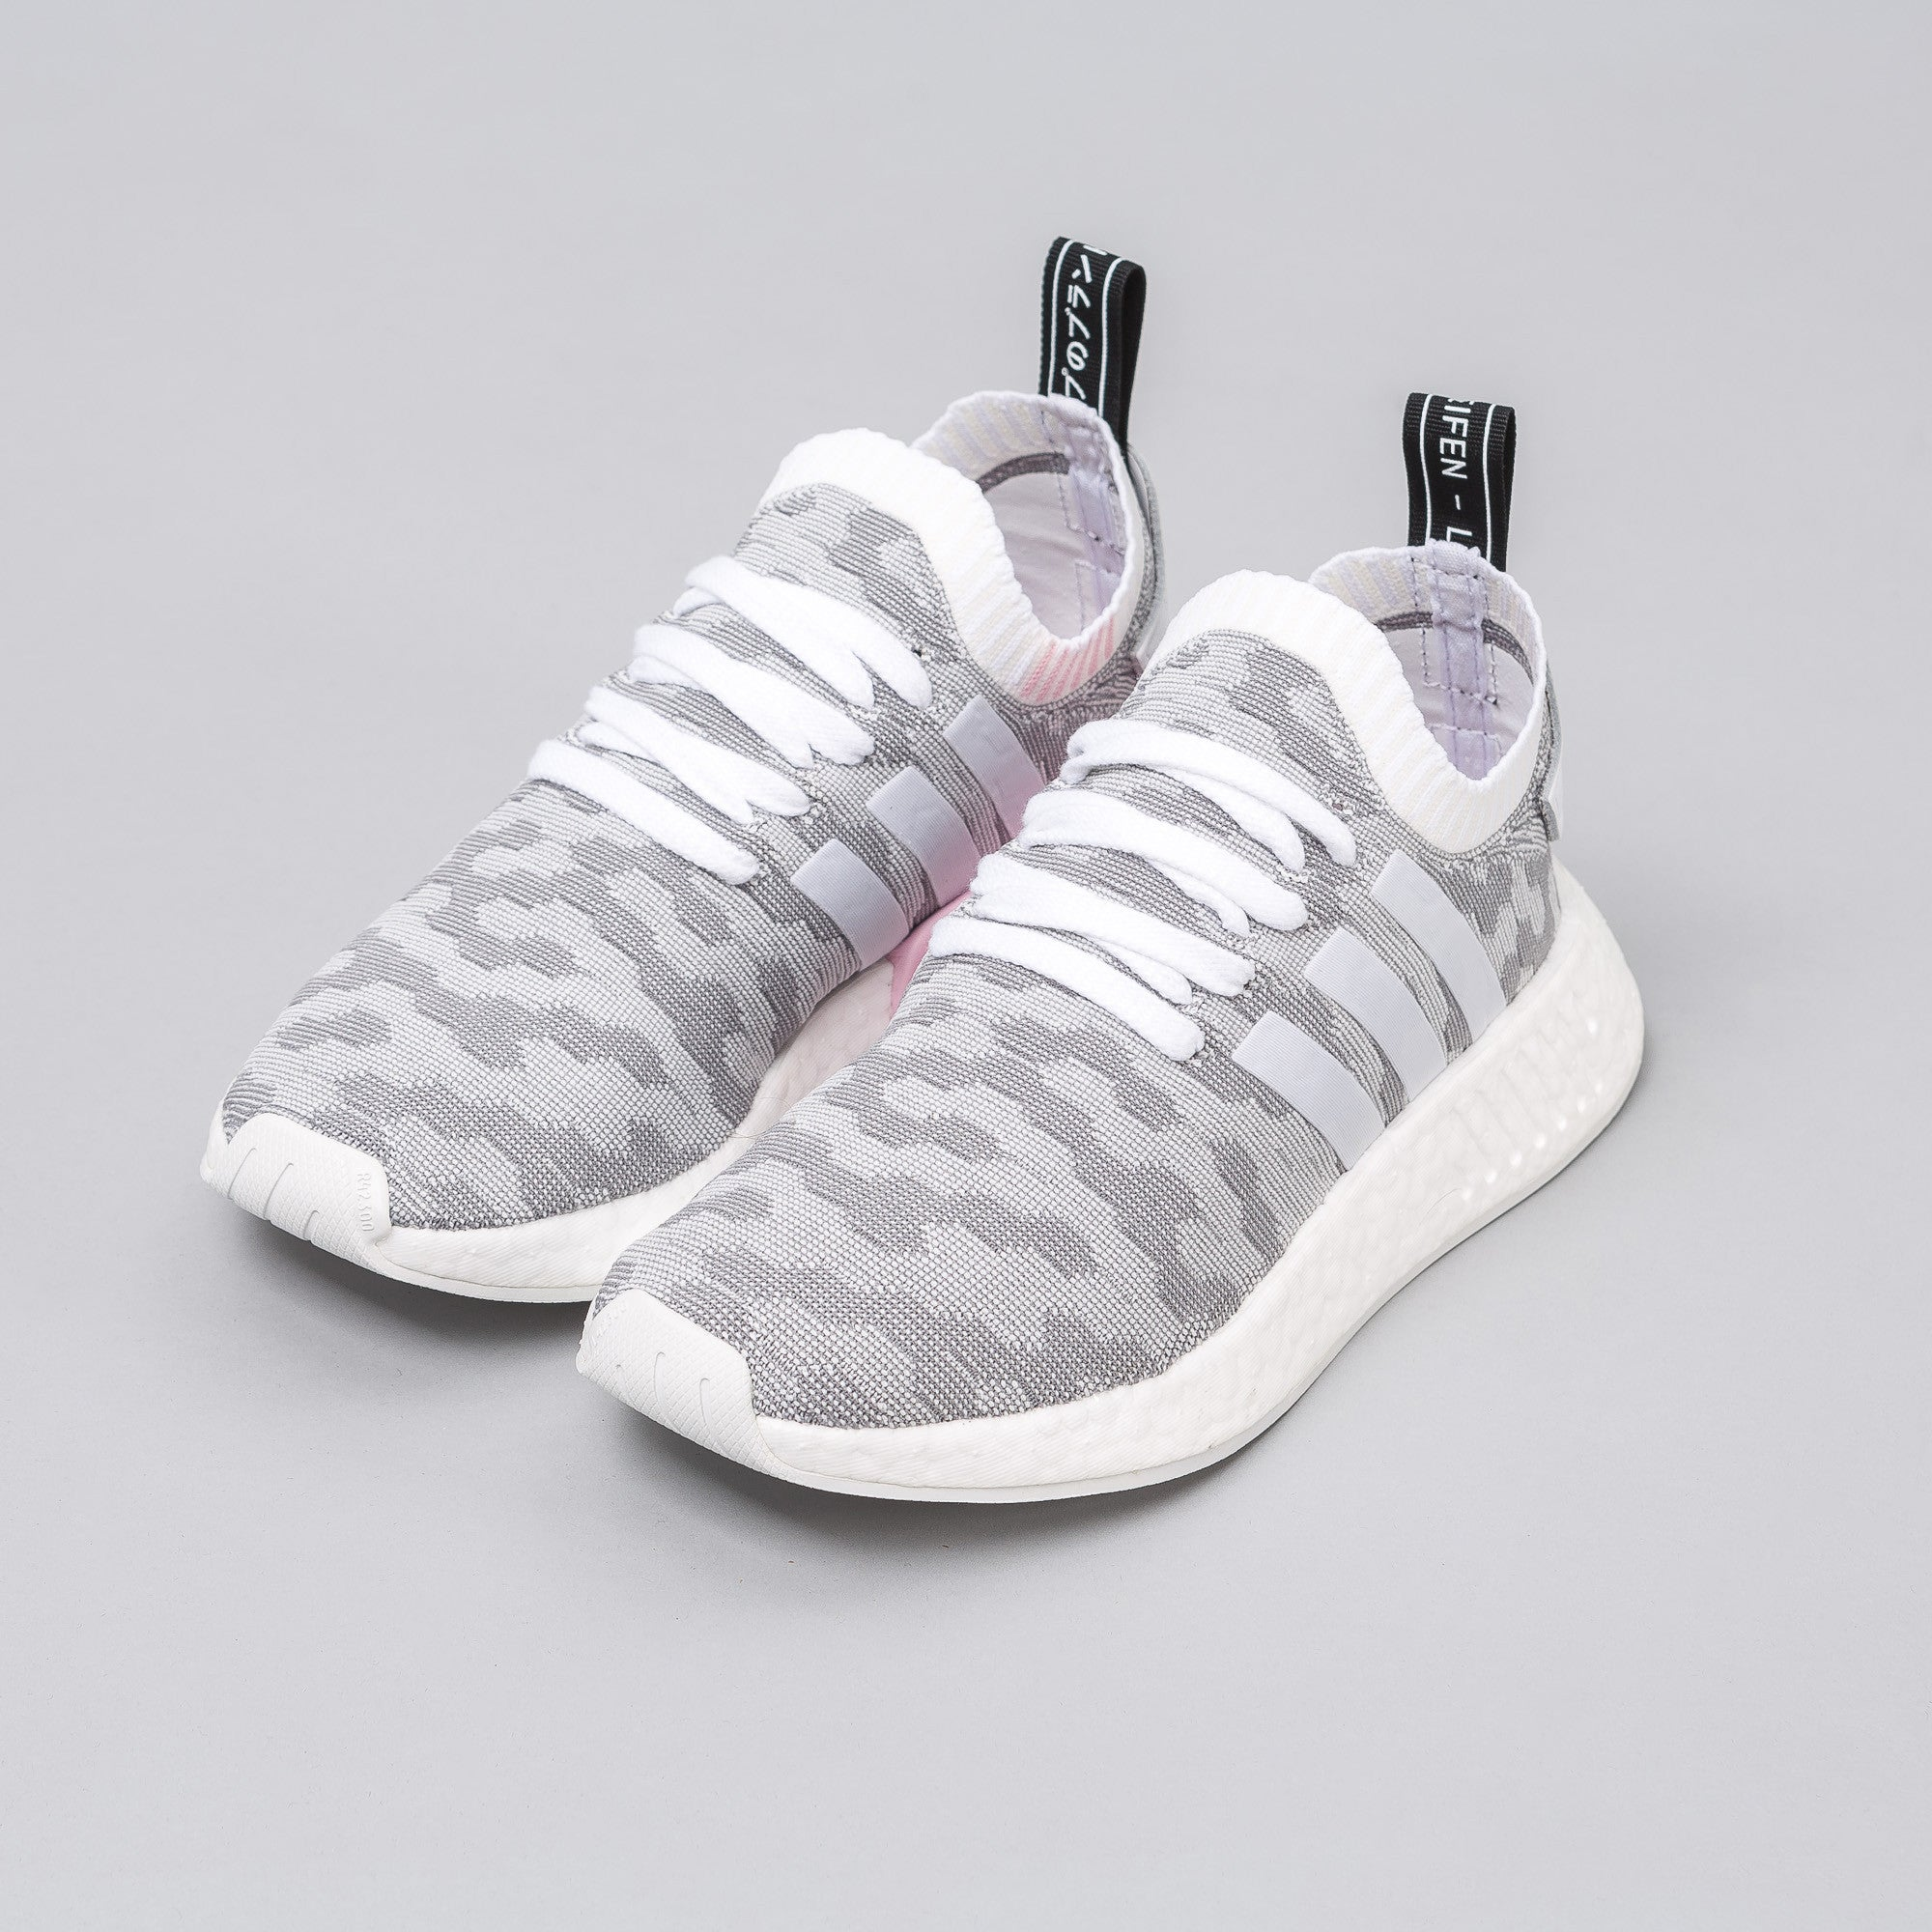 ad7ec4d5b adidas nmd r2 pk womens adidas superstar shoes womens white Equipped ...